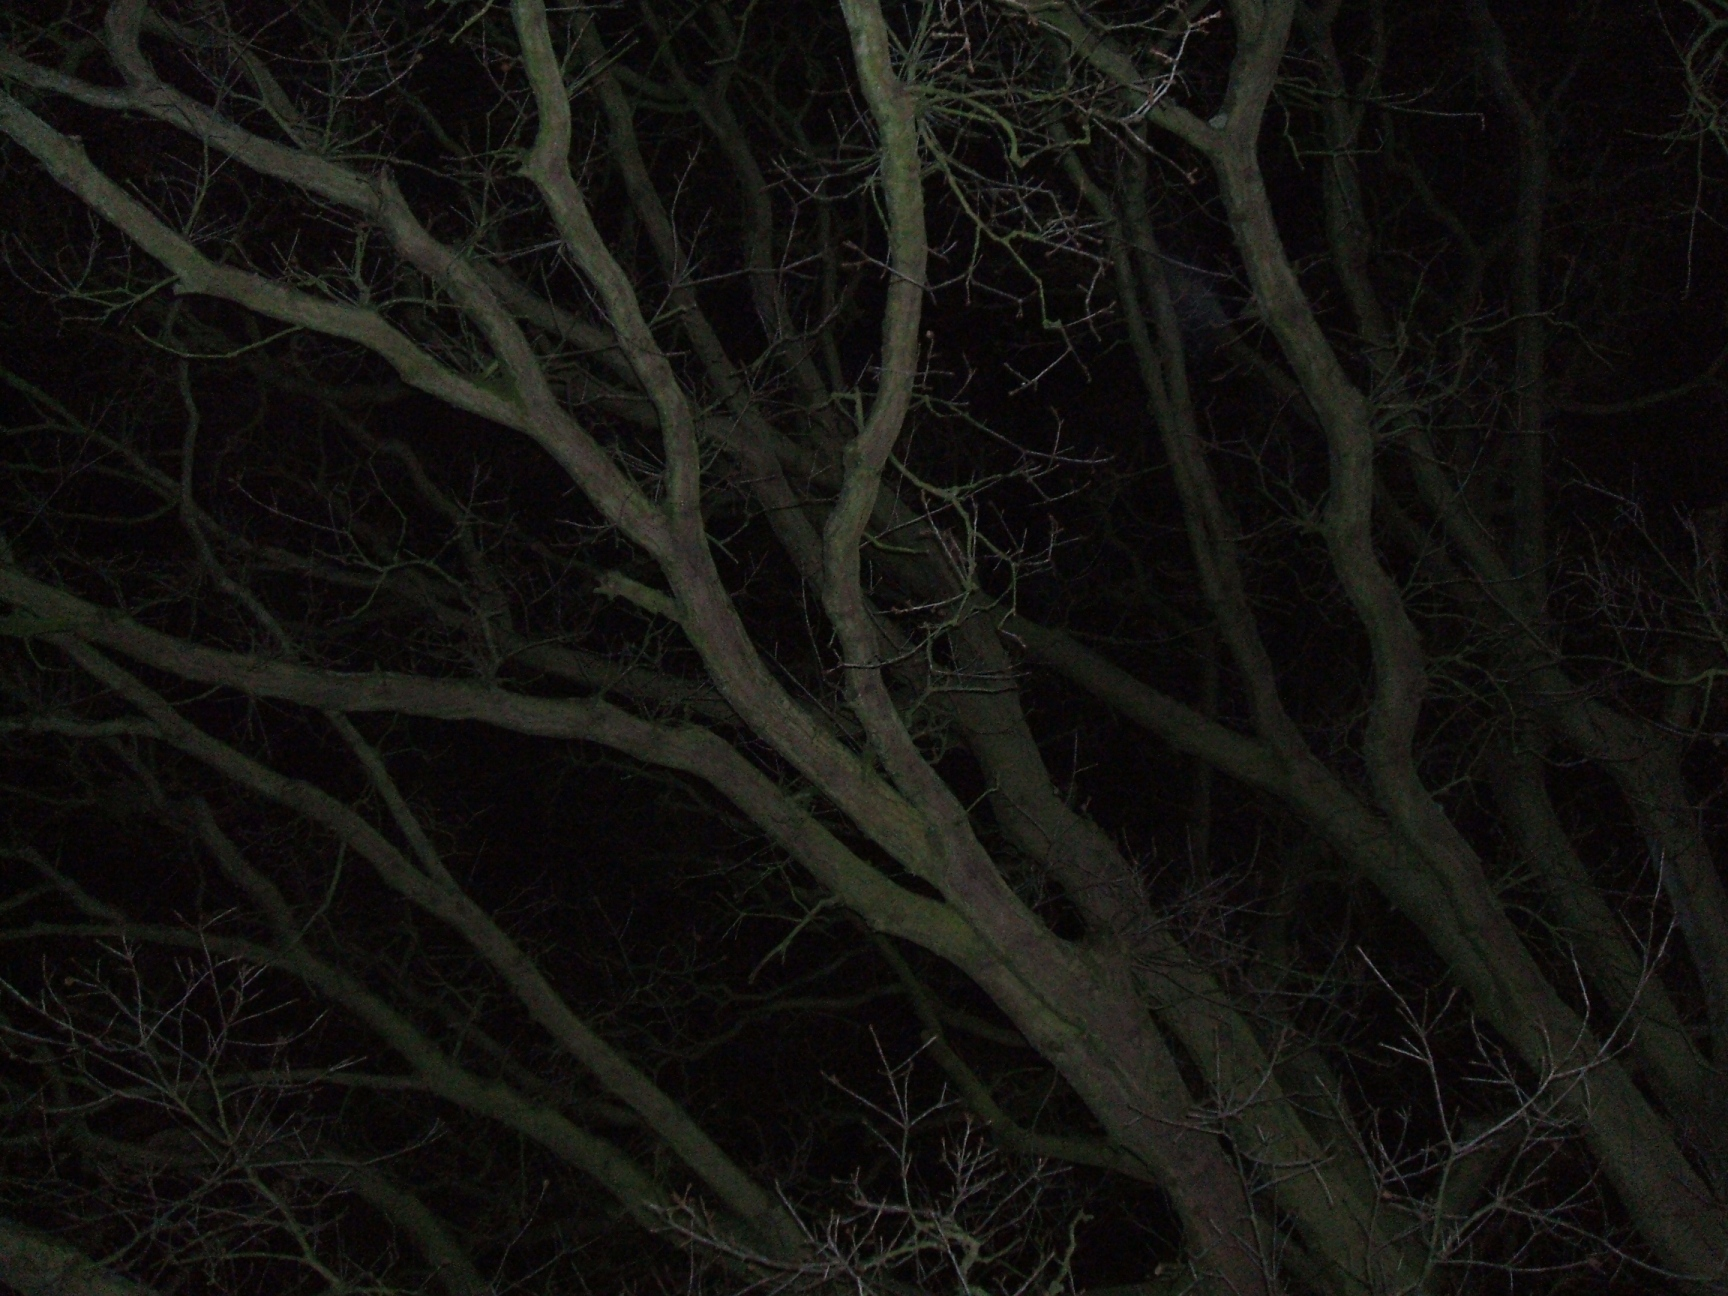 Tree branches at night photo